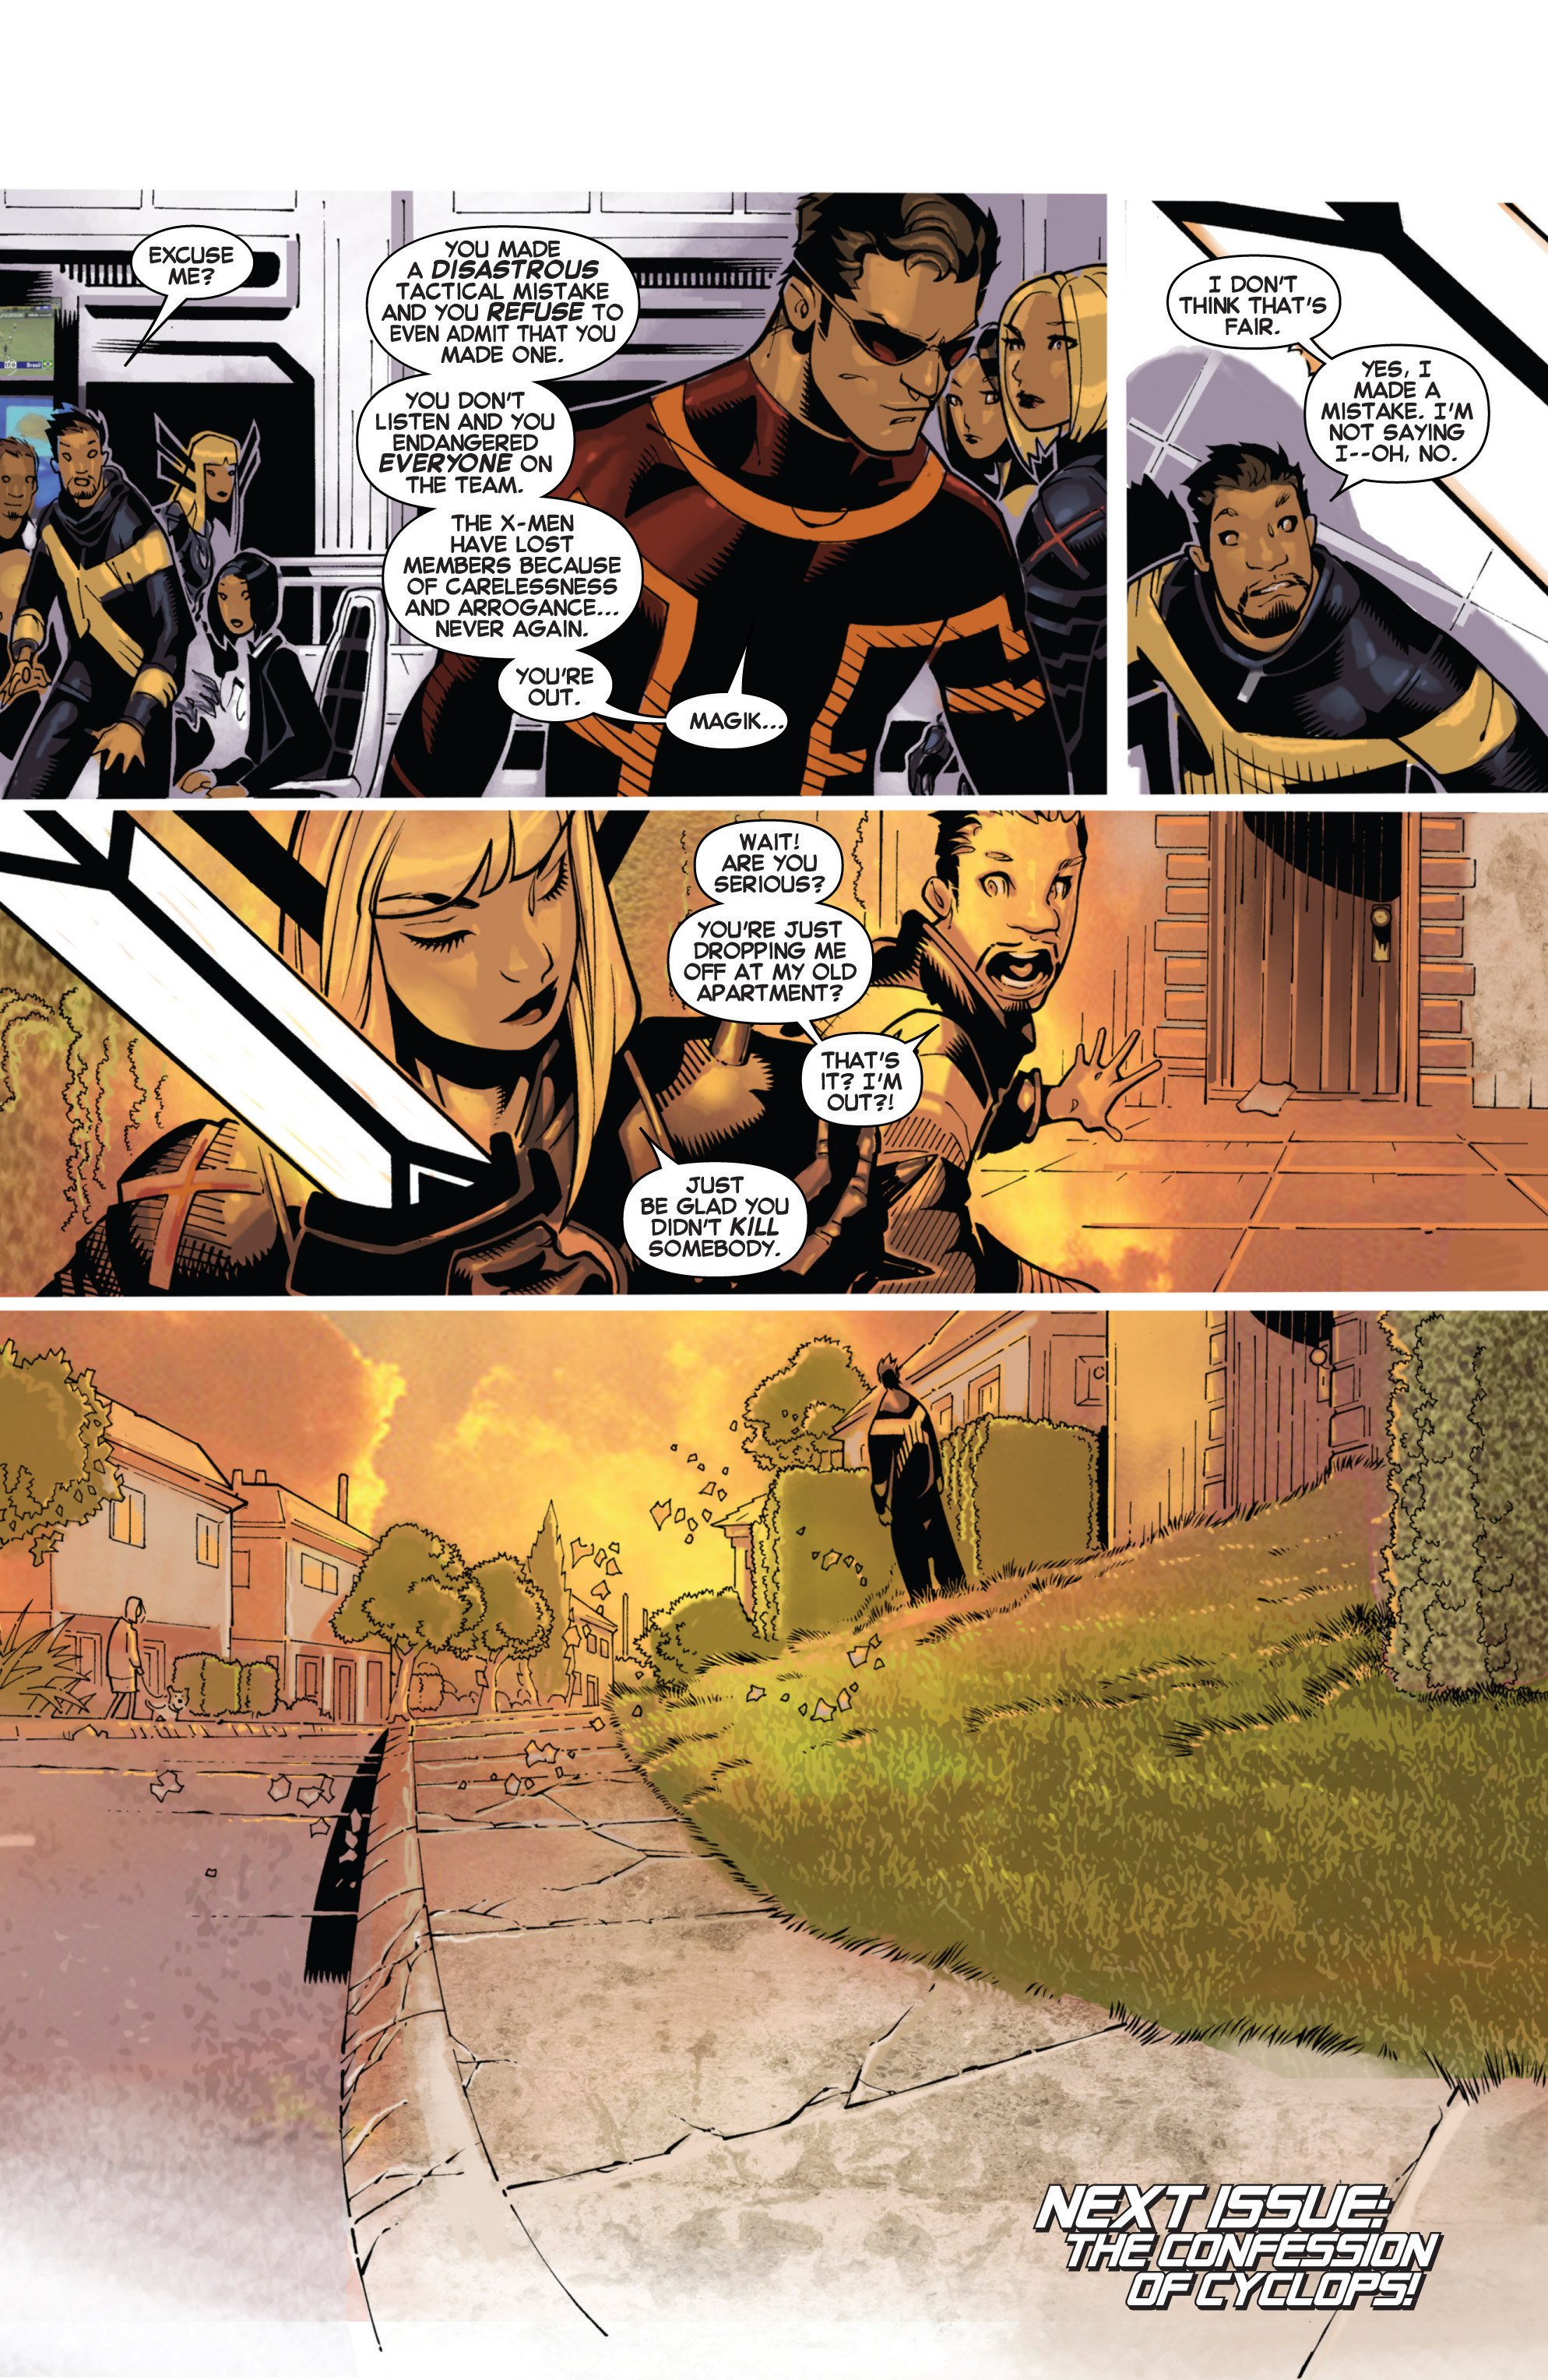 Read online Uncanny X-Men (2013) comic -  Issue # _TPB 3 - The Good, The Bad, The Inhuman - 83